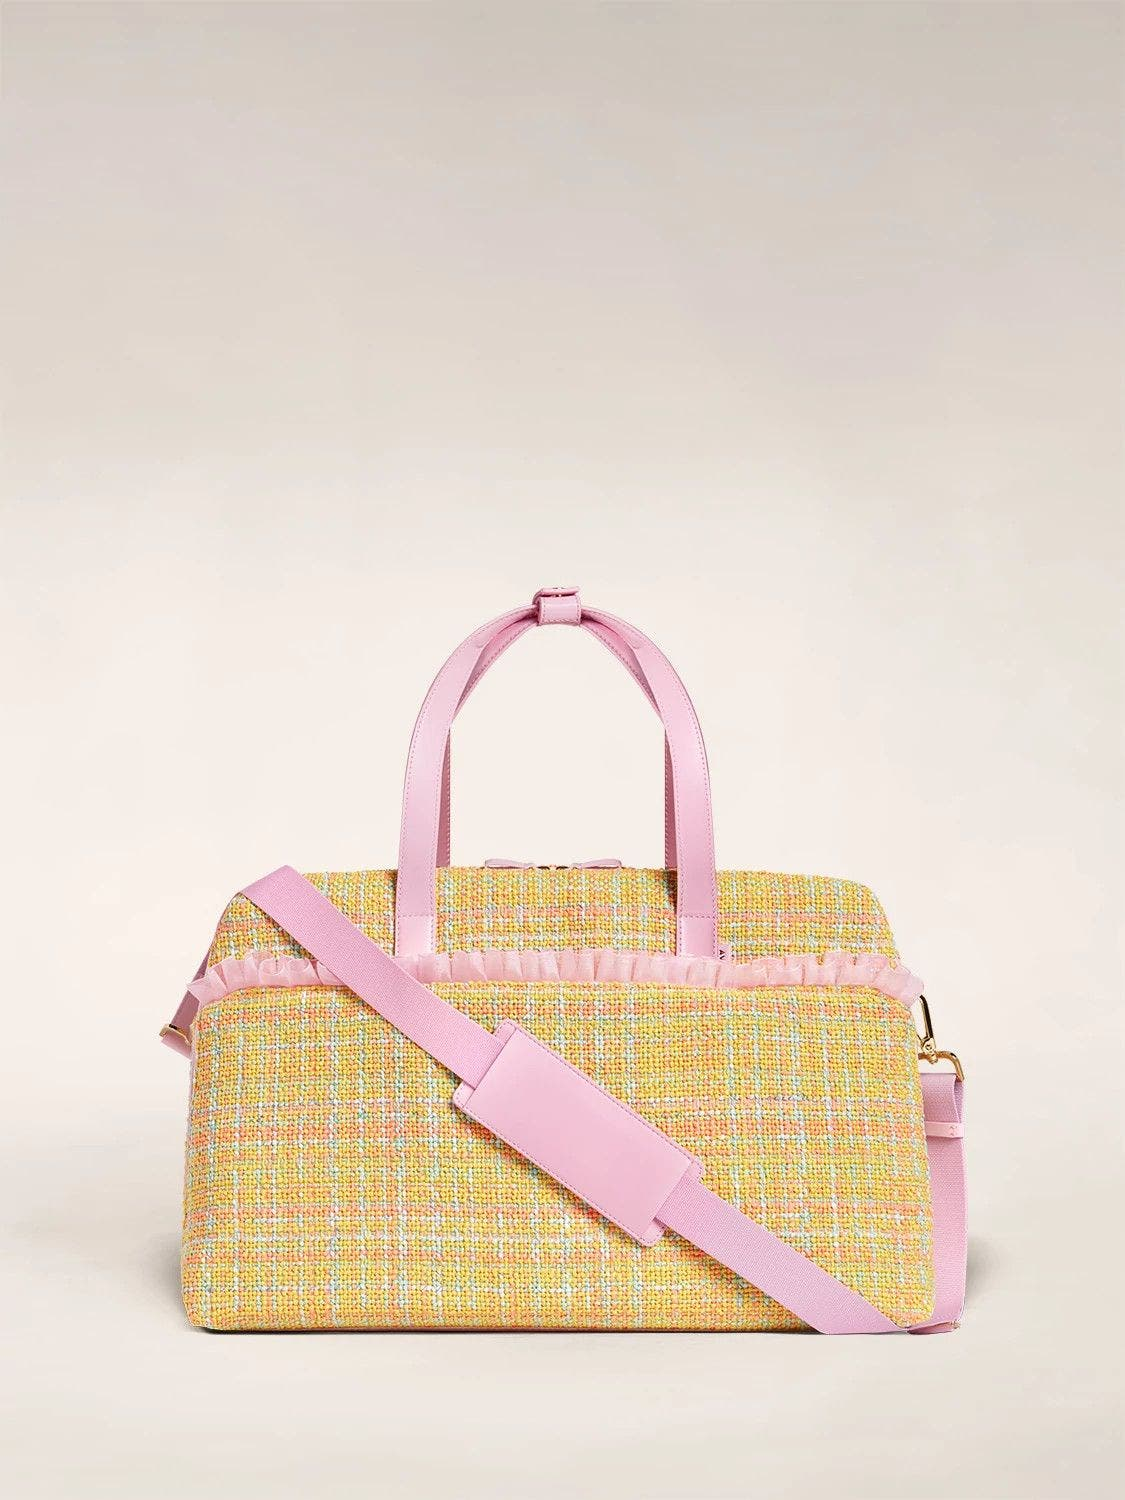 The Large Everywhere Bag by Tia Adeola in pink and yellow tweed with pink organza ruffle and a shoulder strap